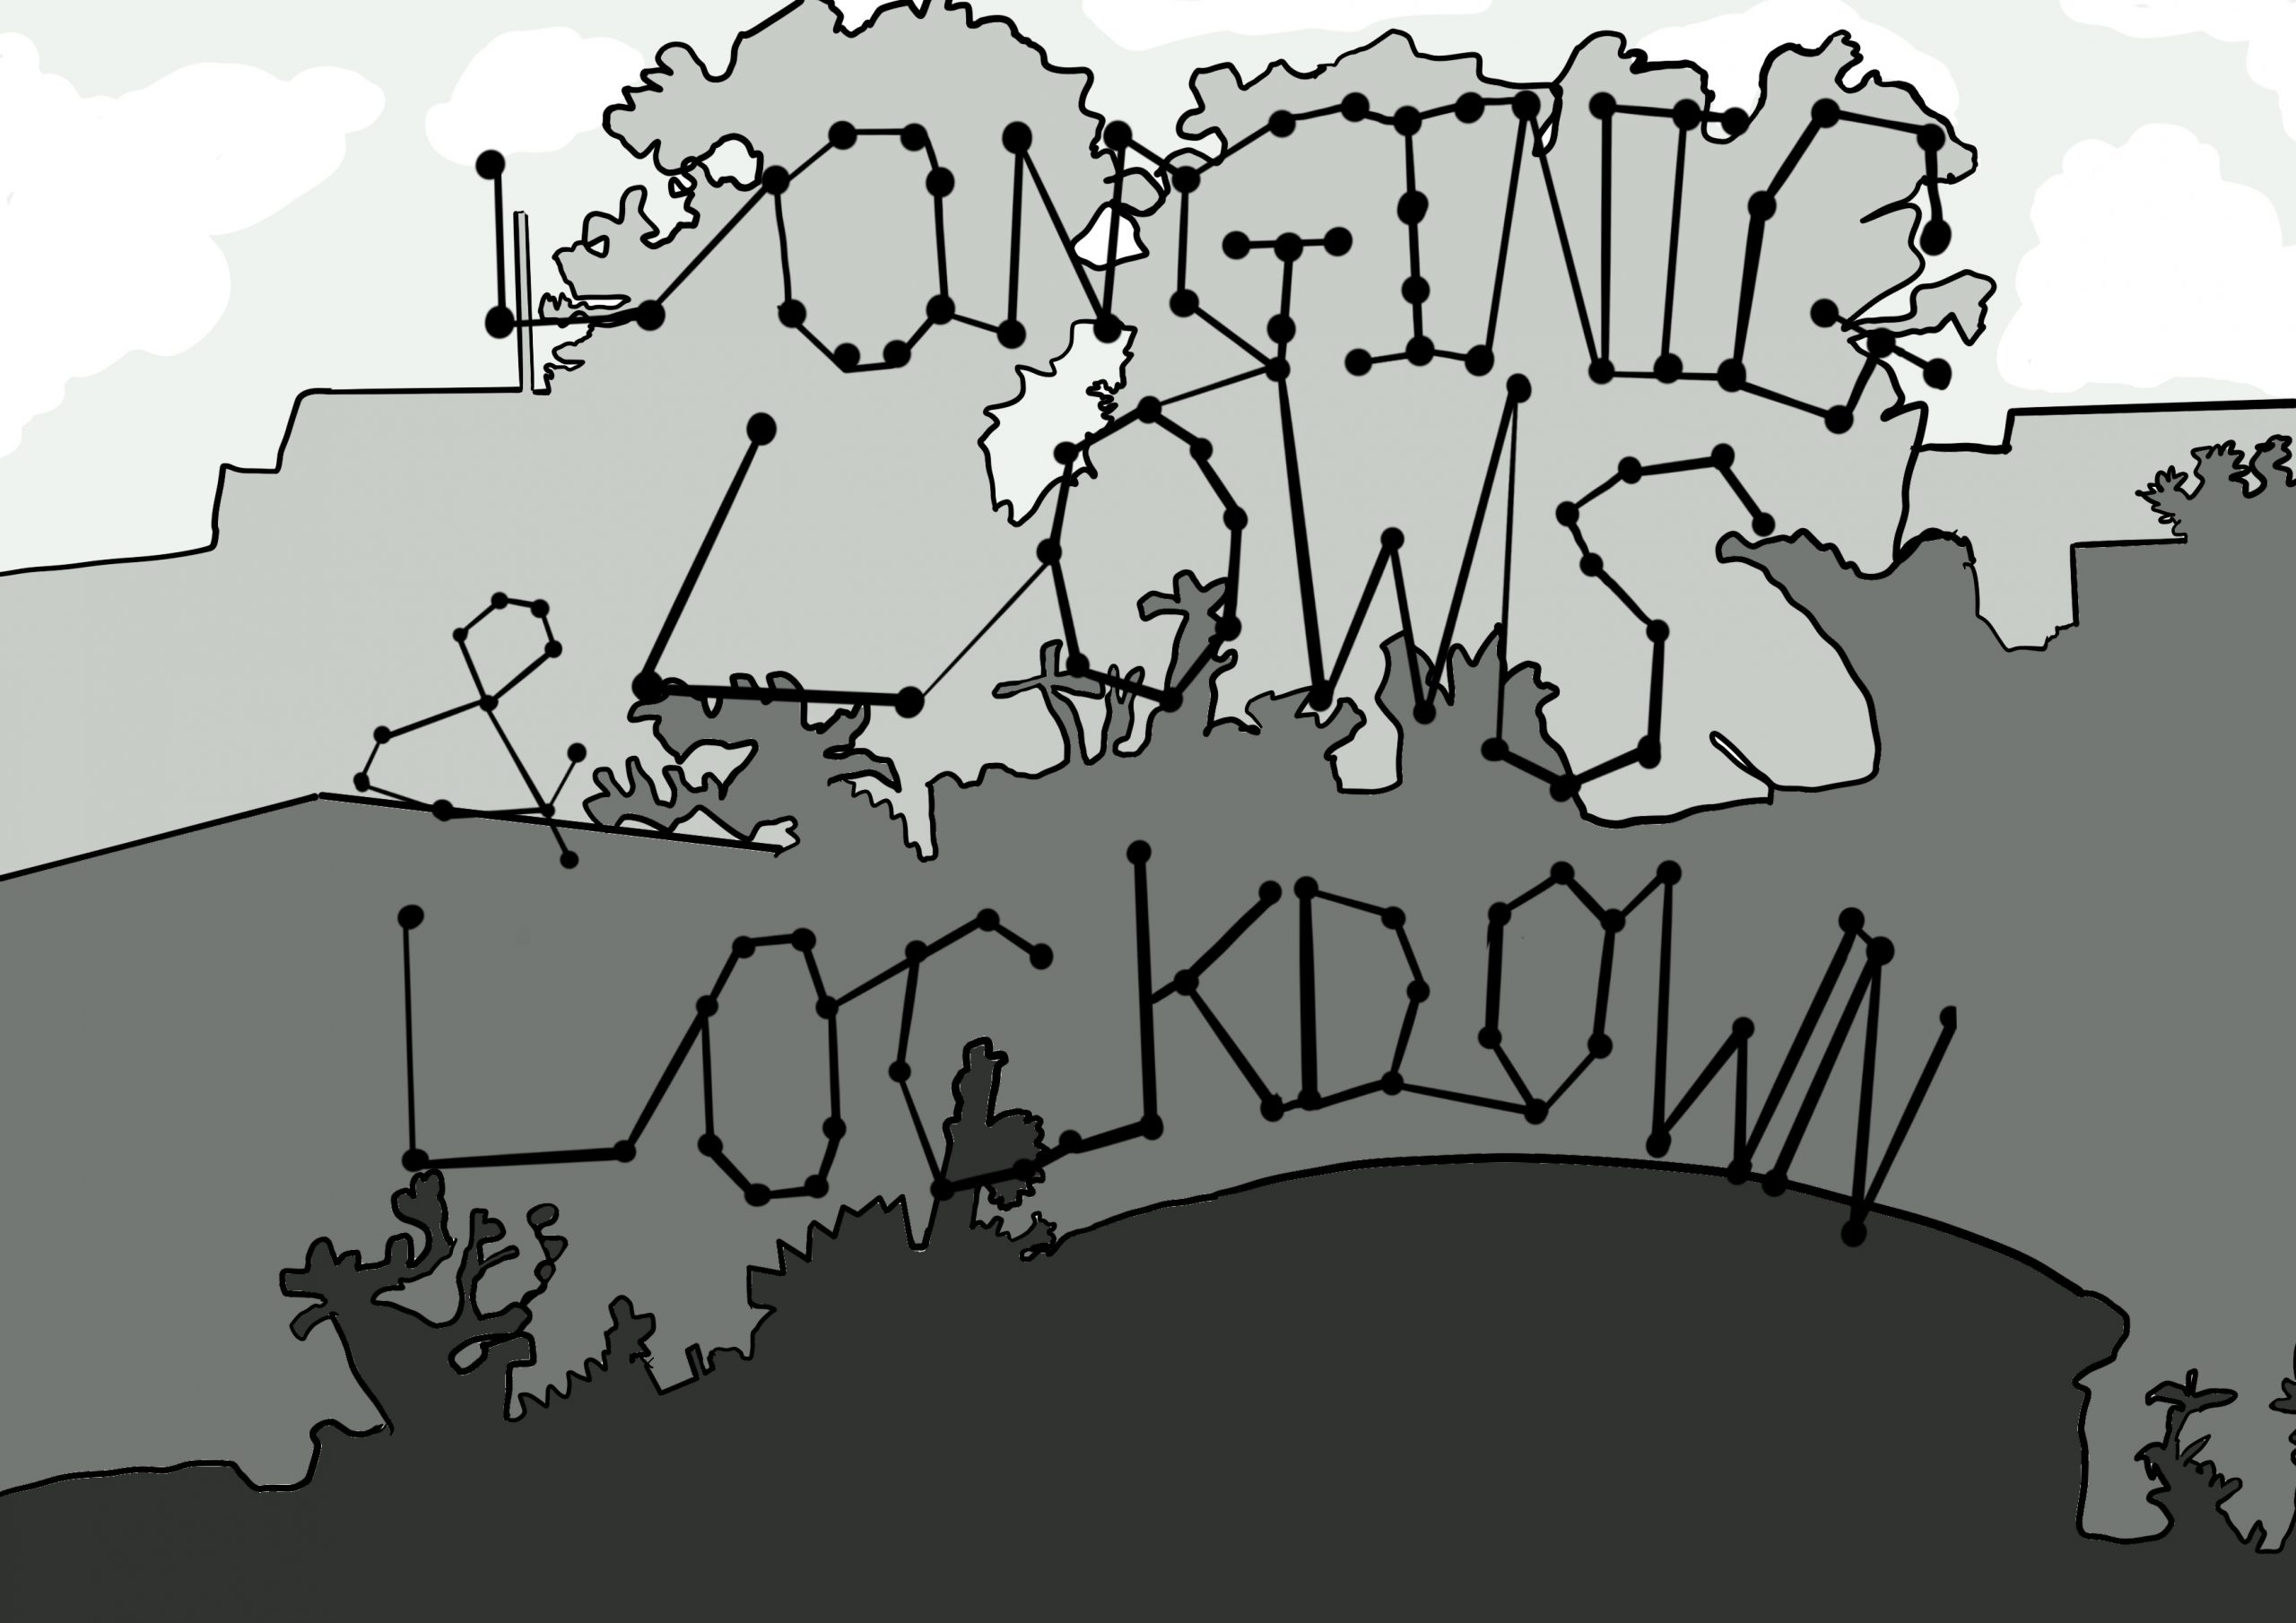 Image of a digital drawing by Touretteshero. The image is a series of silhouettes of trees and shrubbery in different hues of grey. The words 'Longong & Lows in Lockdown' are layered over the image in a join the dots style black font.